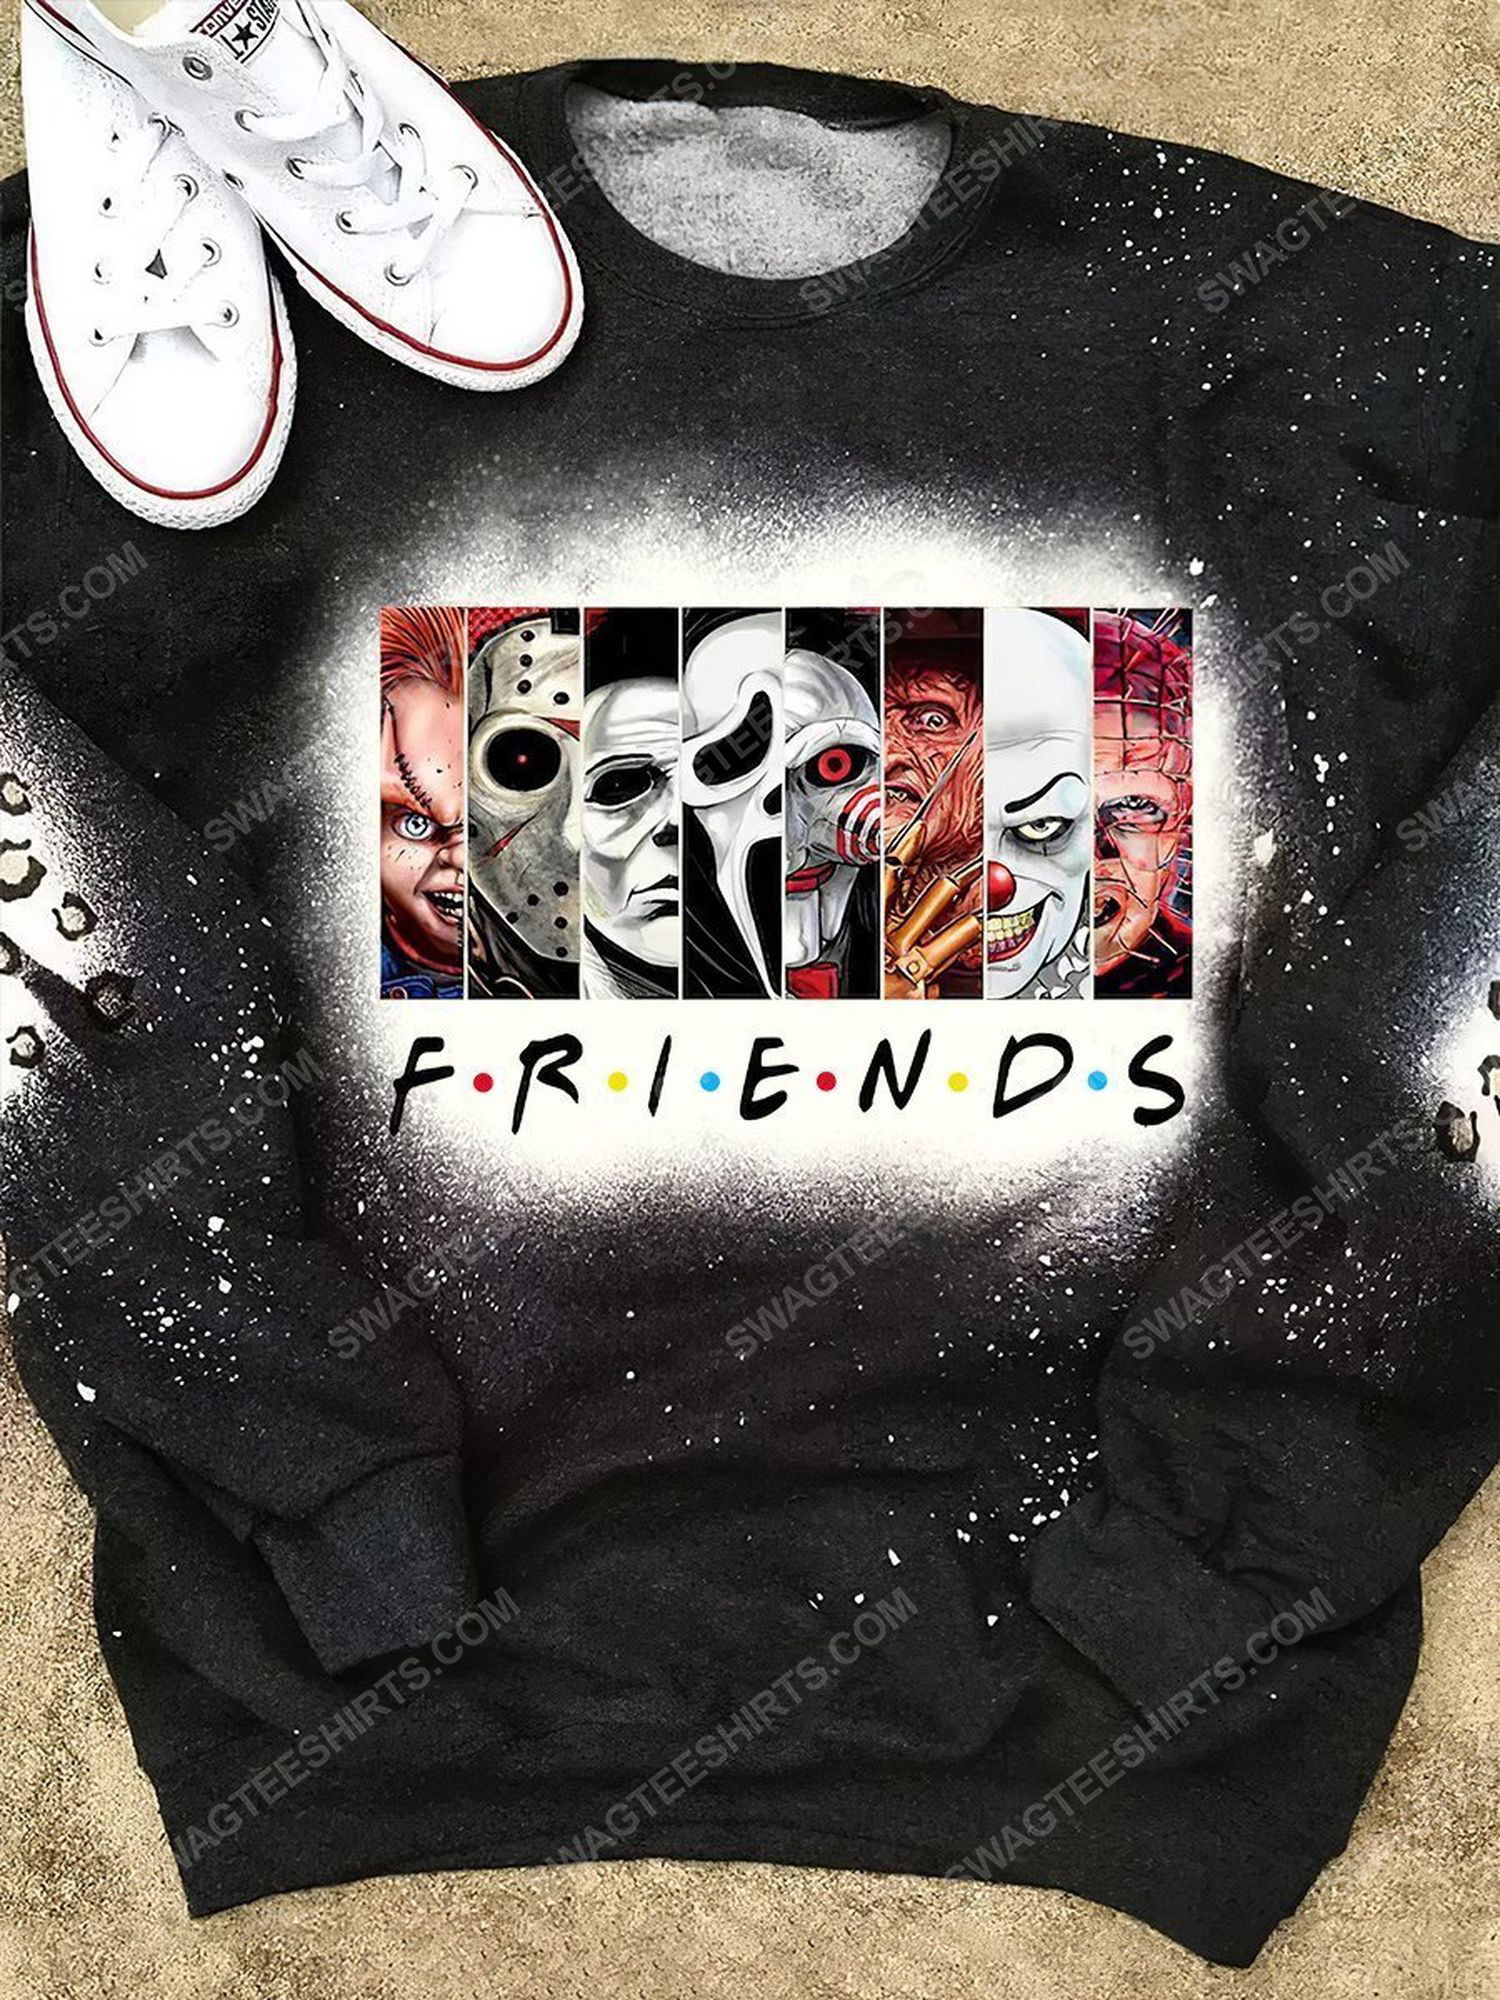 Halloween time horror movie characters bleached shirt 1 - Copy (2)